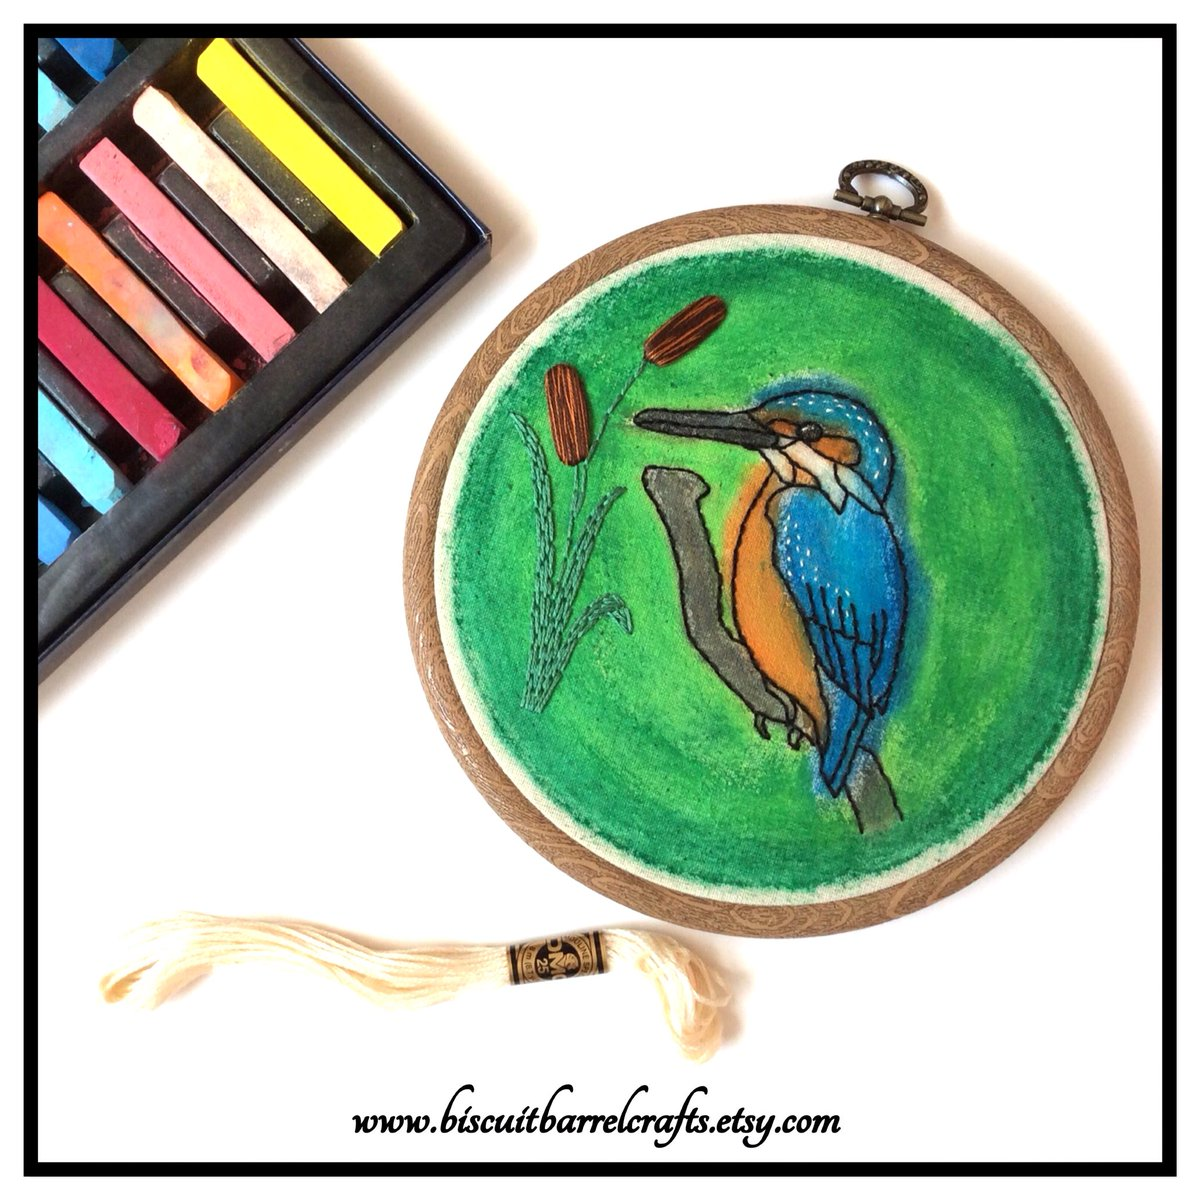 #MensGiftsDay #UKGiftHour Bird watcher, nature lover, keen fisherman  fabulous #handcrafted #wallart for #homedecor #mancave from our @Etsy shop.   http://www. biscuitbarrelcrafts.etsy.com  &nbsp;    #crafturday #birds #fish #giftsforhim #giftsfordad #giftsformen #supportsmallbusiness #shopindie<br>http://pic.twitter.com/O48p9rfgDQ